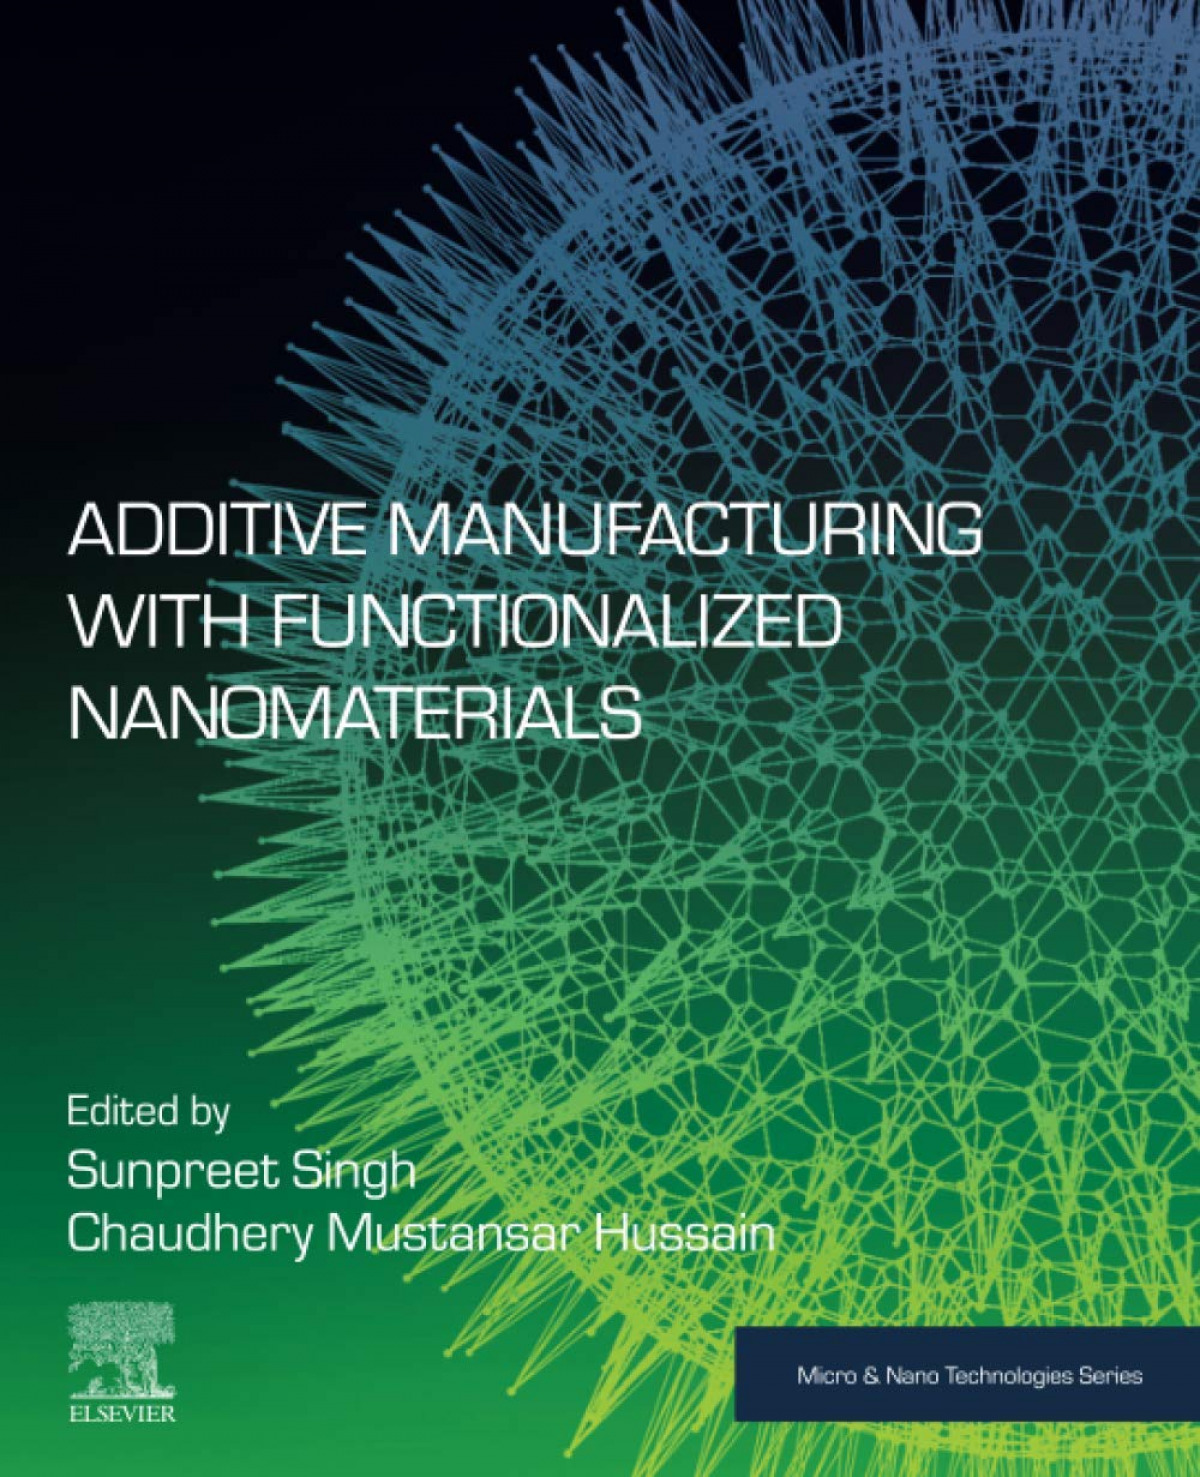 ADDITIVE MANUFACTURING WITH FUNCIONALIZED NANOMATERIALS